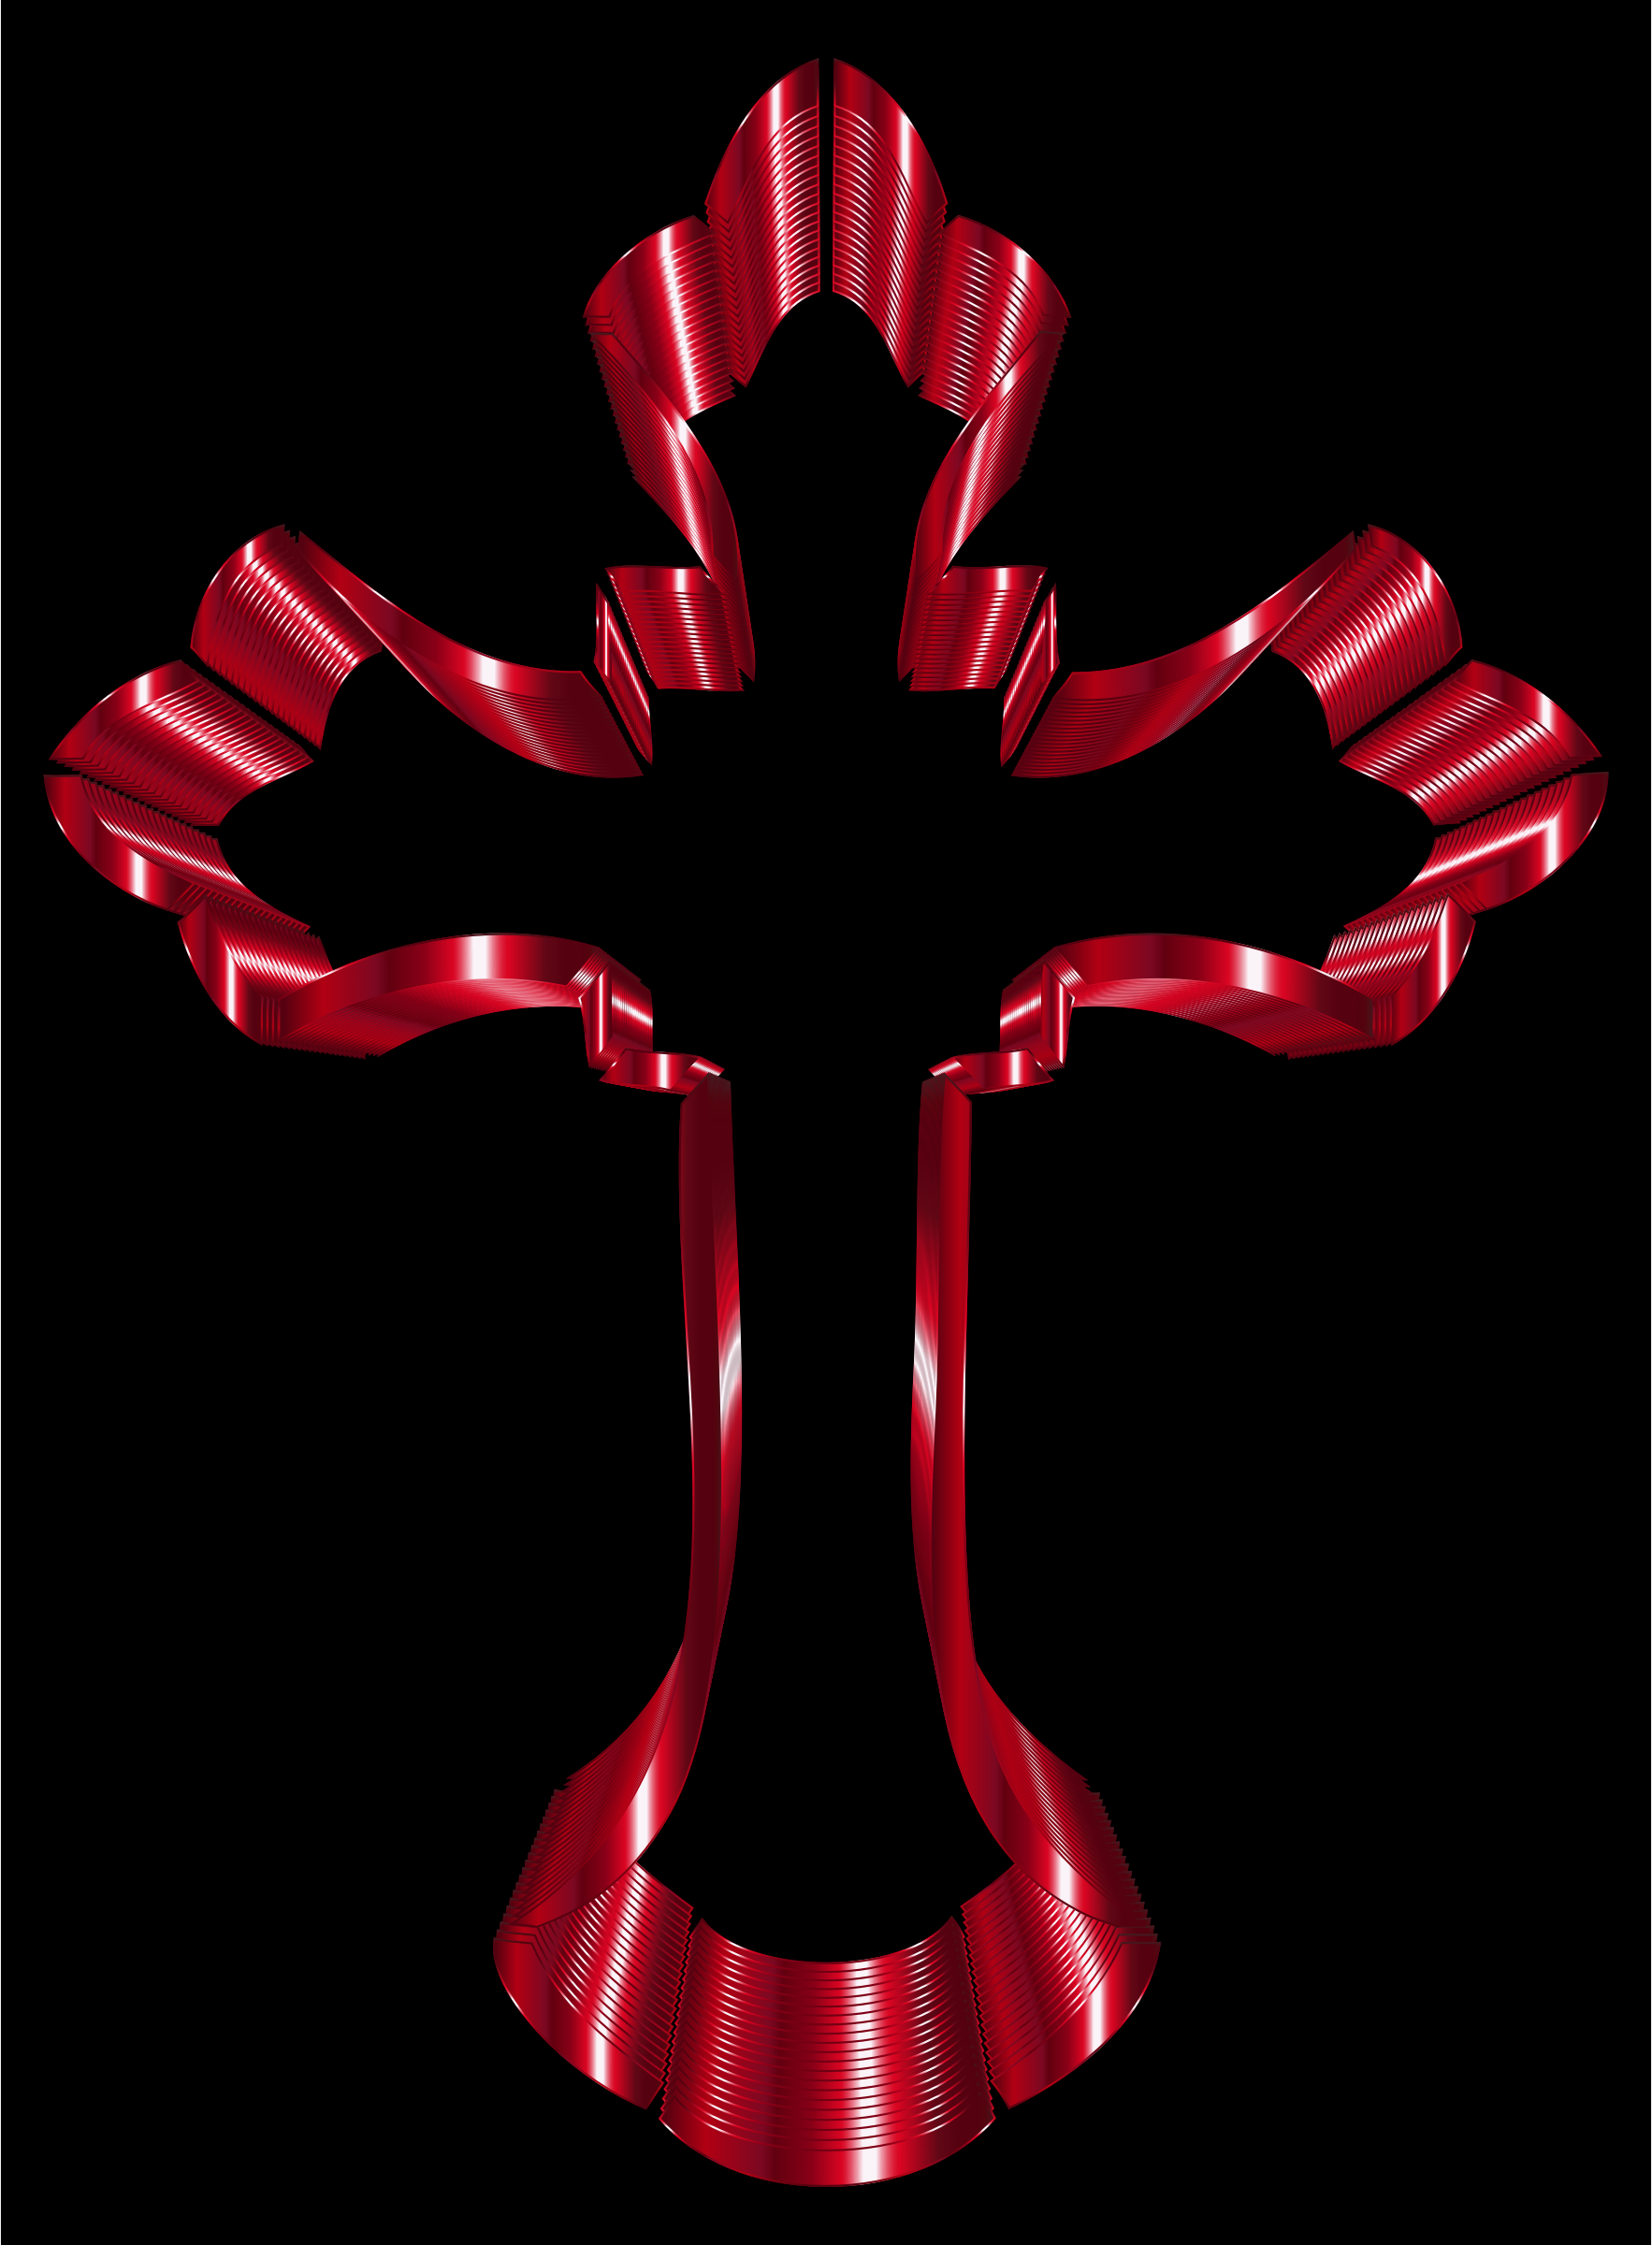 Crimson Ornate Cross by GDJ